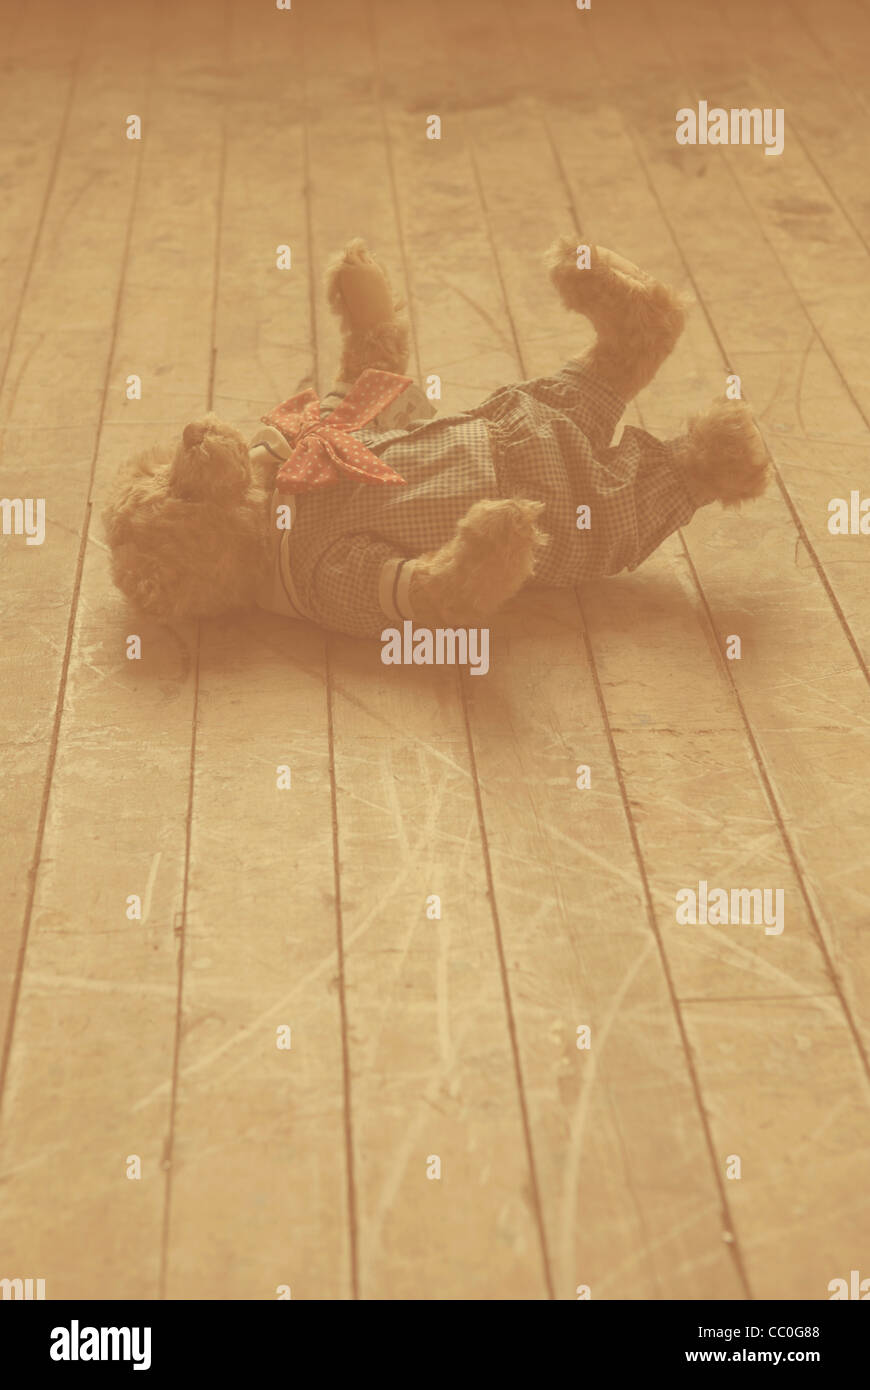 Abandoned teddy bear on the floor - Stock Image